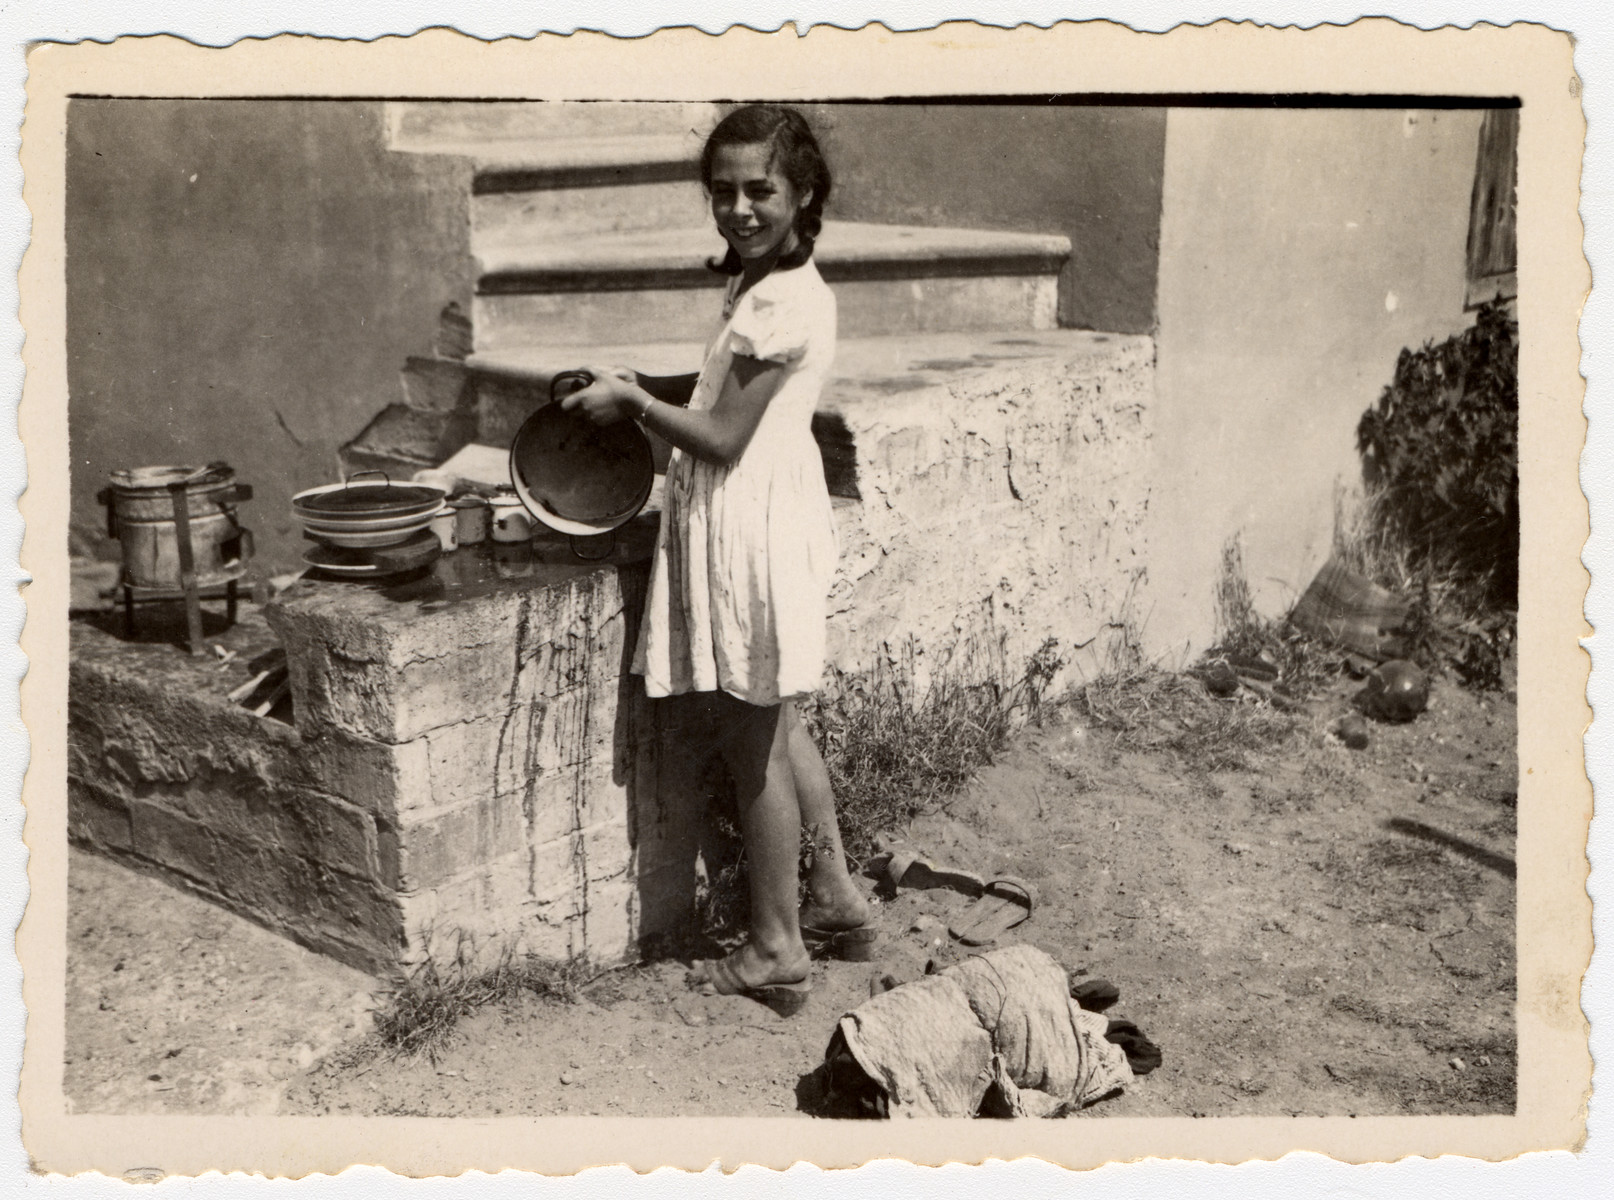 A German-Jewish refugee girl washes dishes outdoors in Shkoset Albania.  Pictured is Johanna Jutta Gerechter.